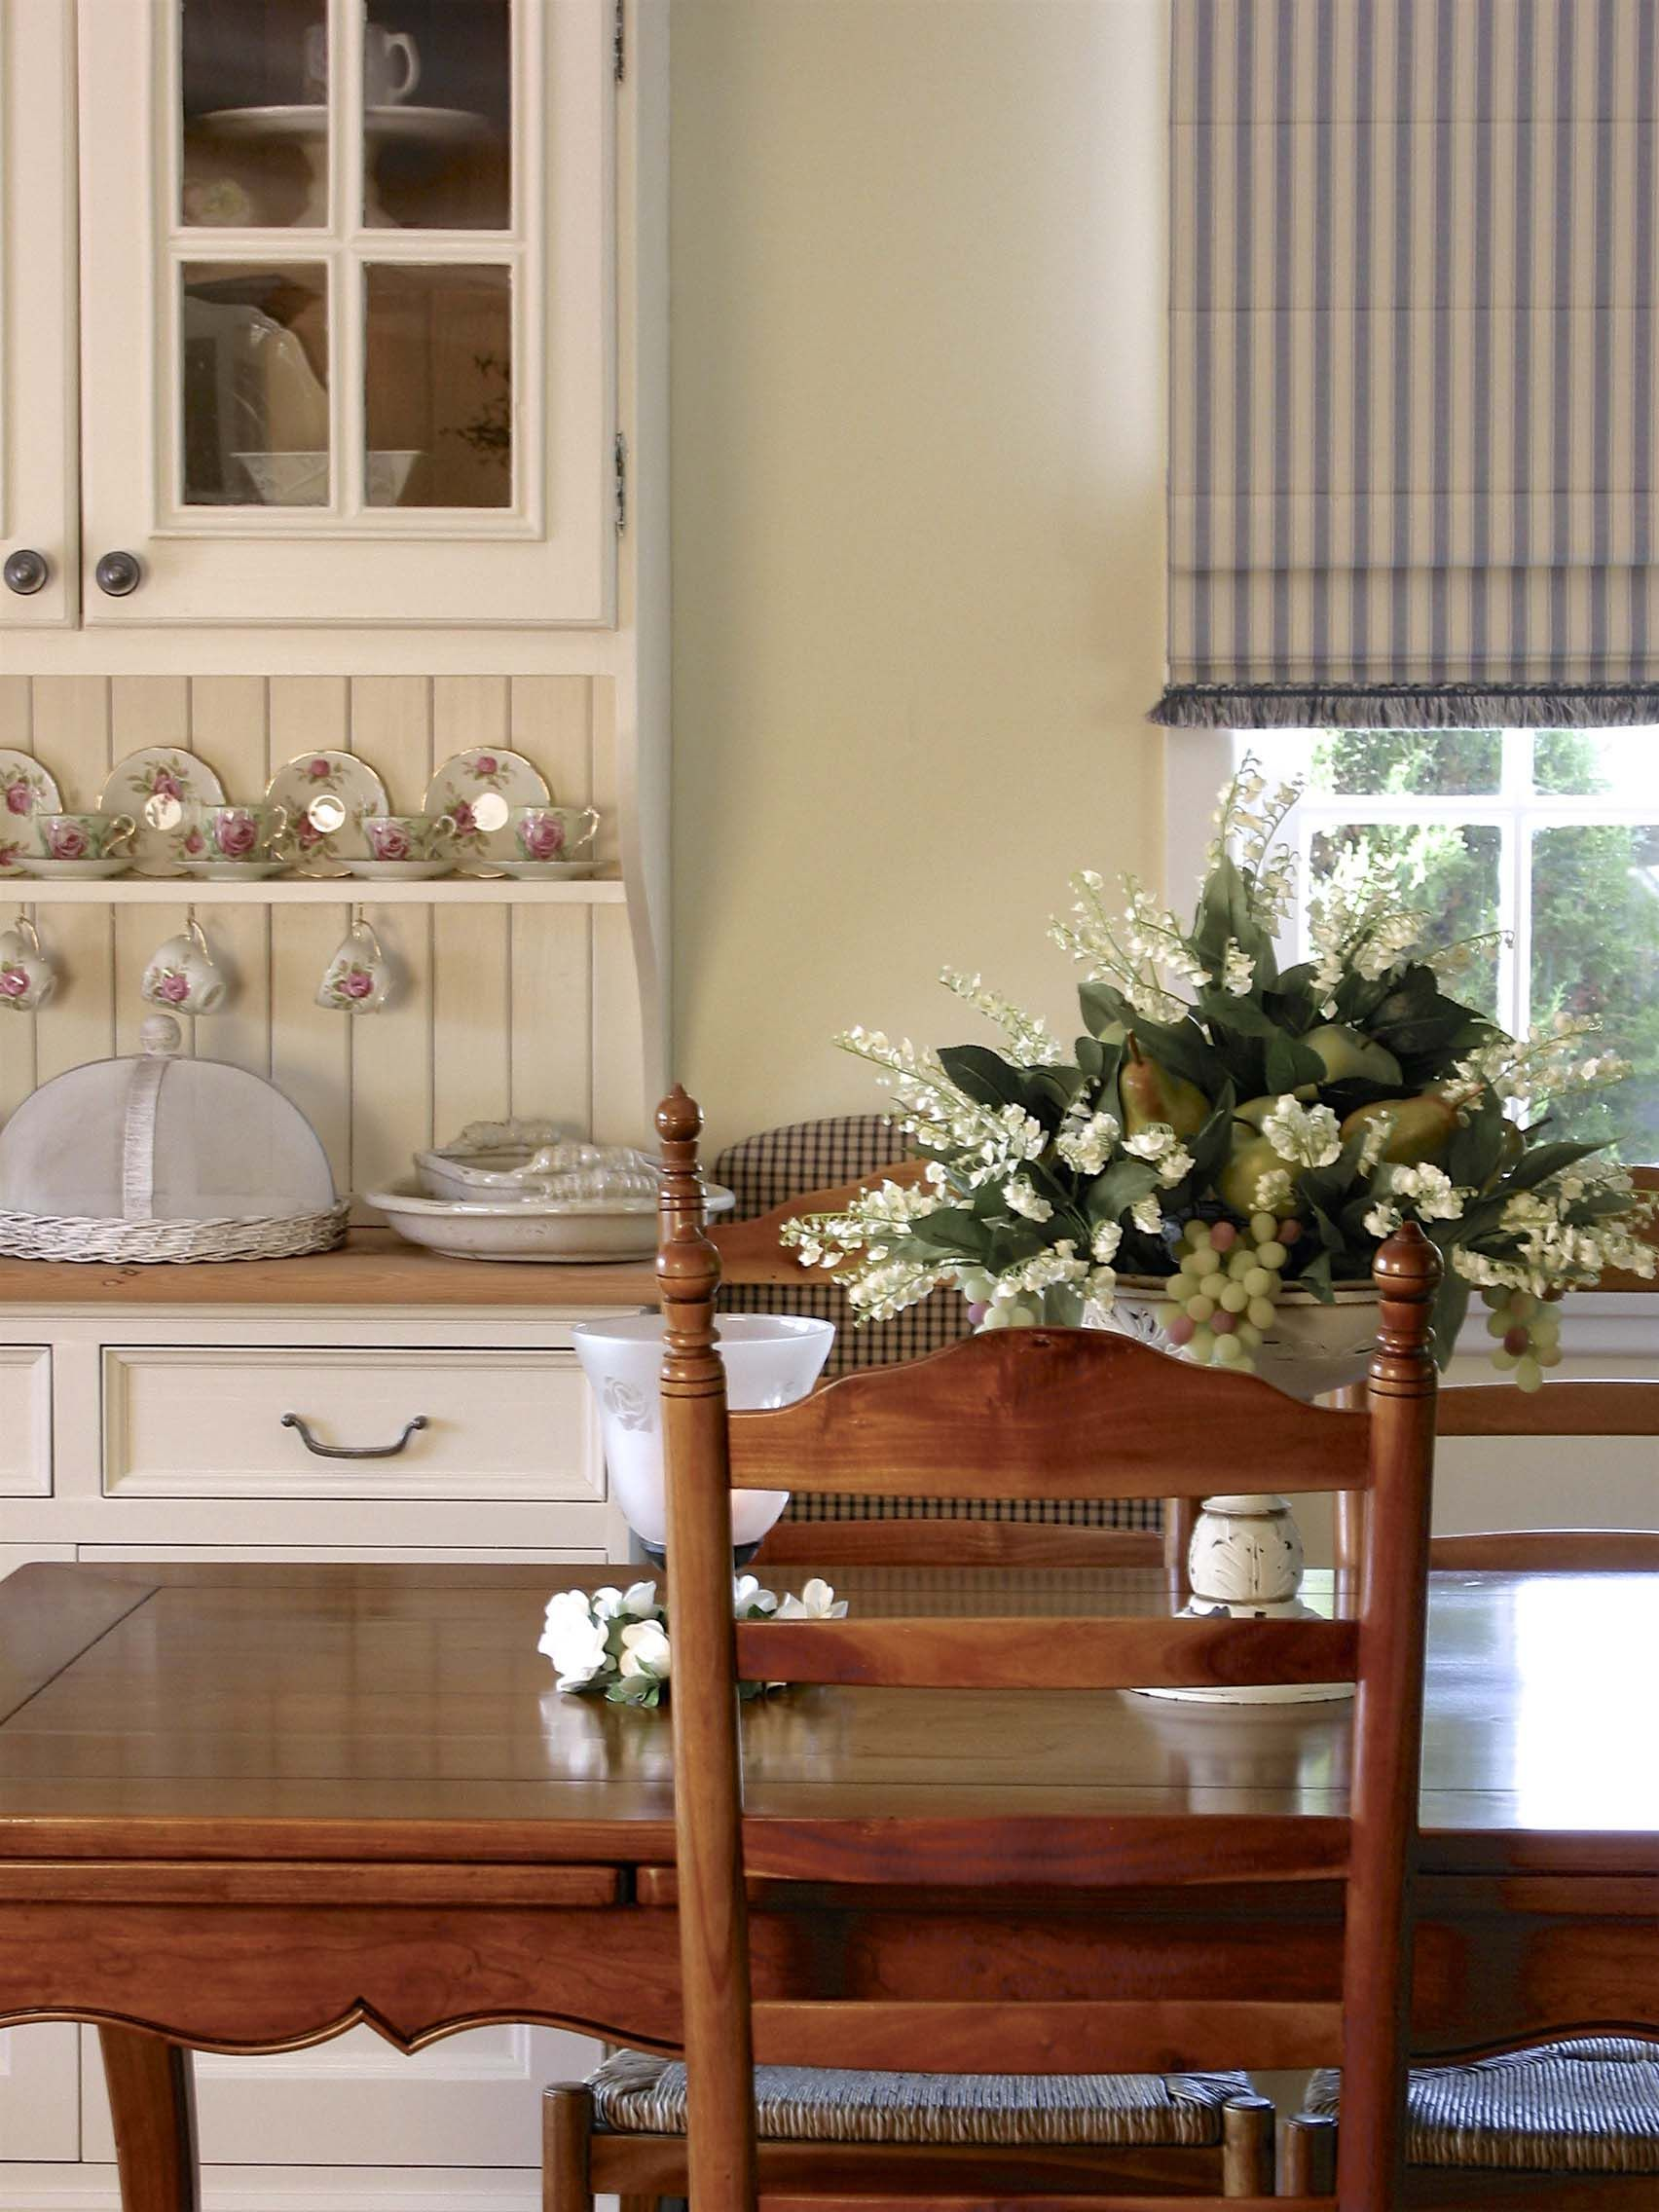 This French farmhouse kitchen with tiled benchtop, plate